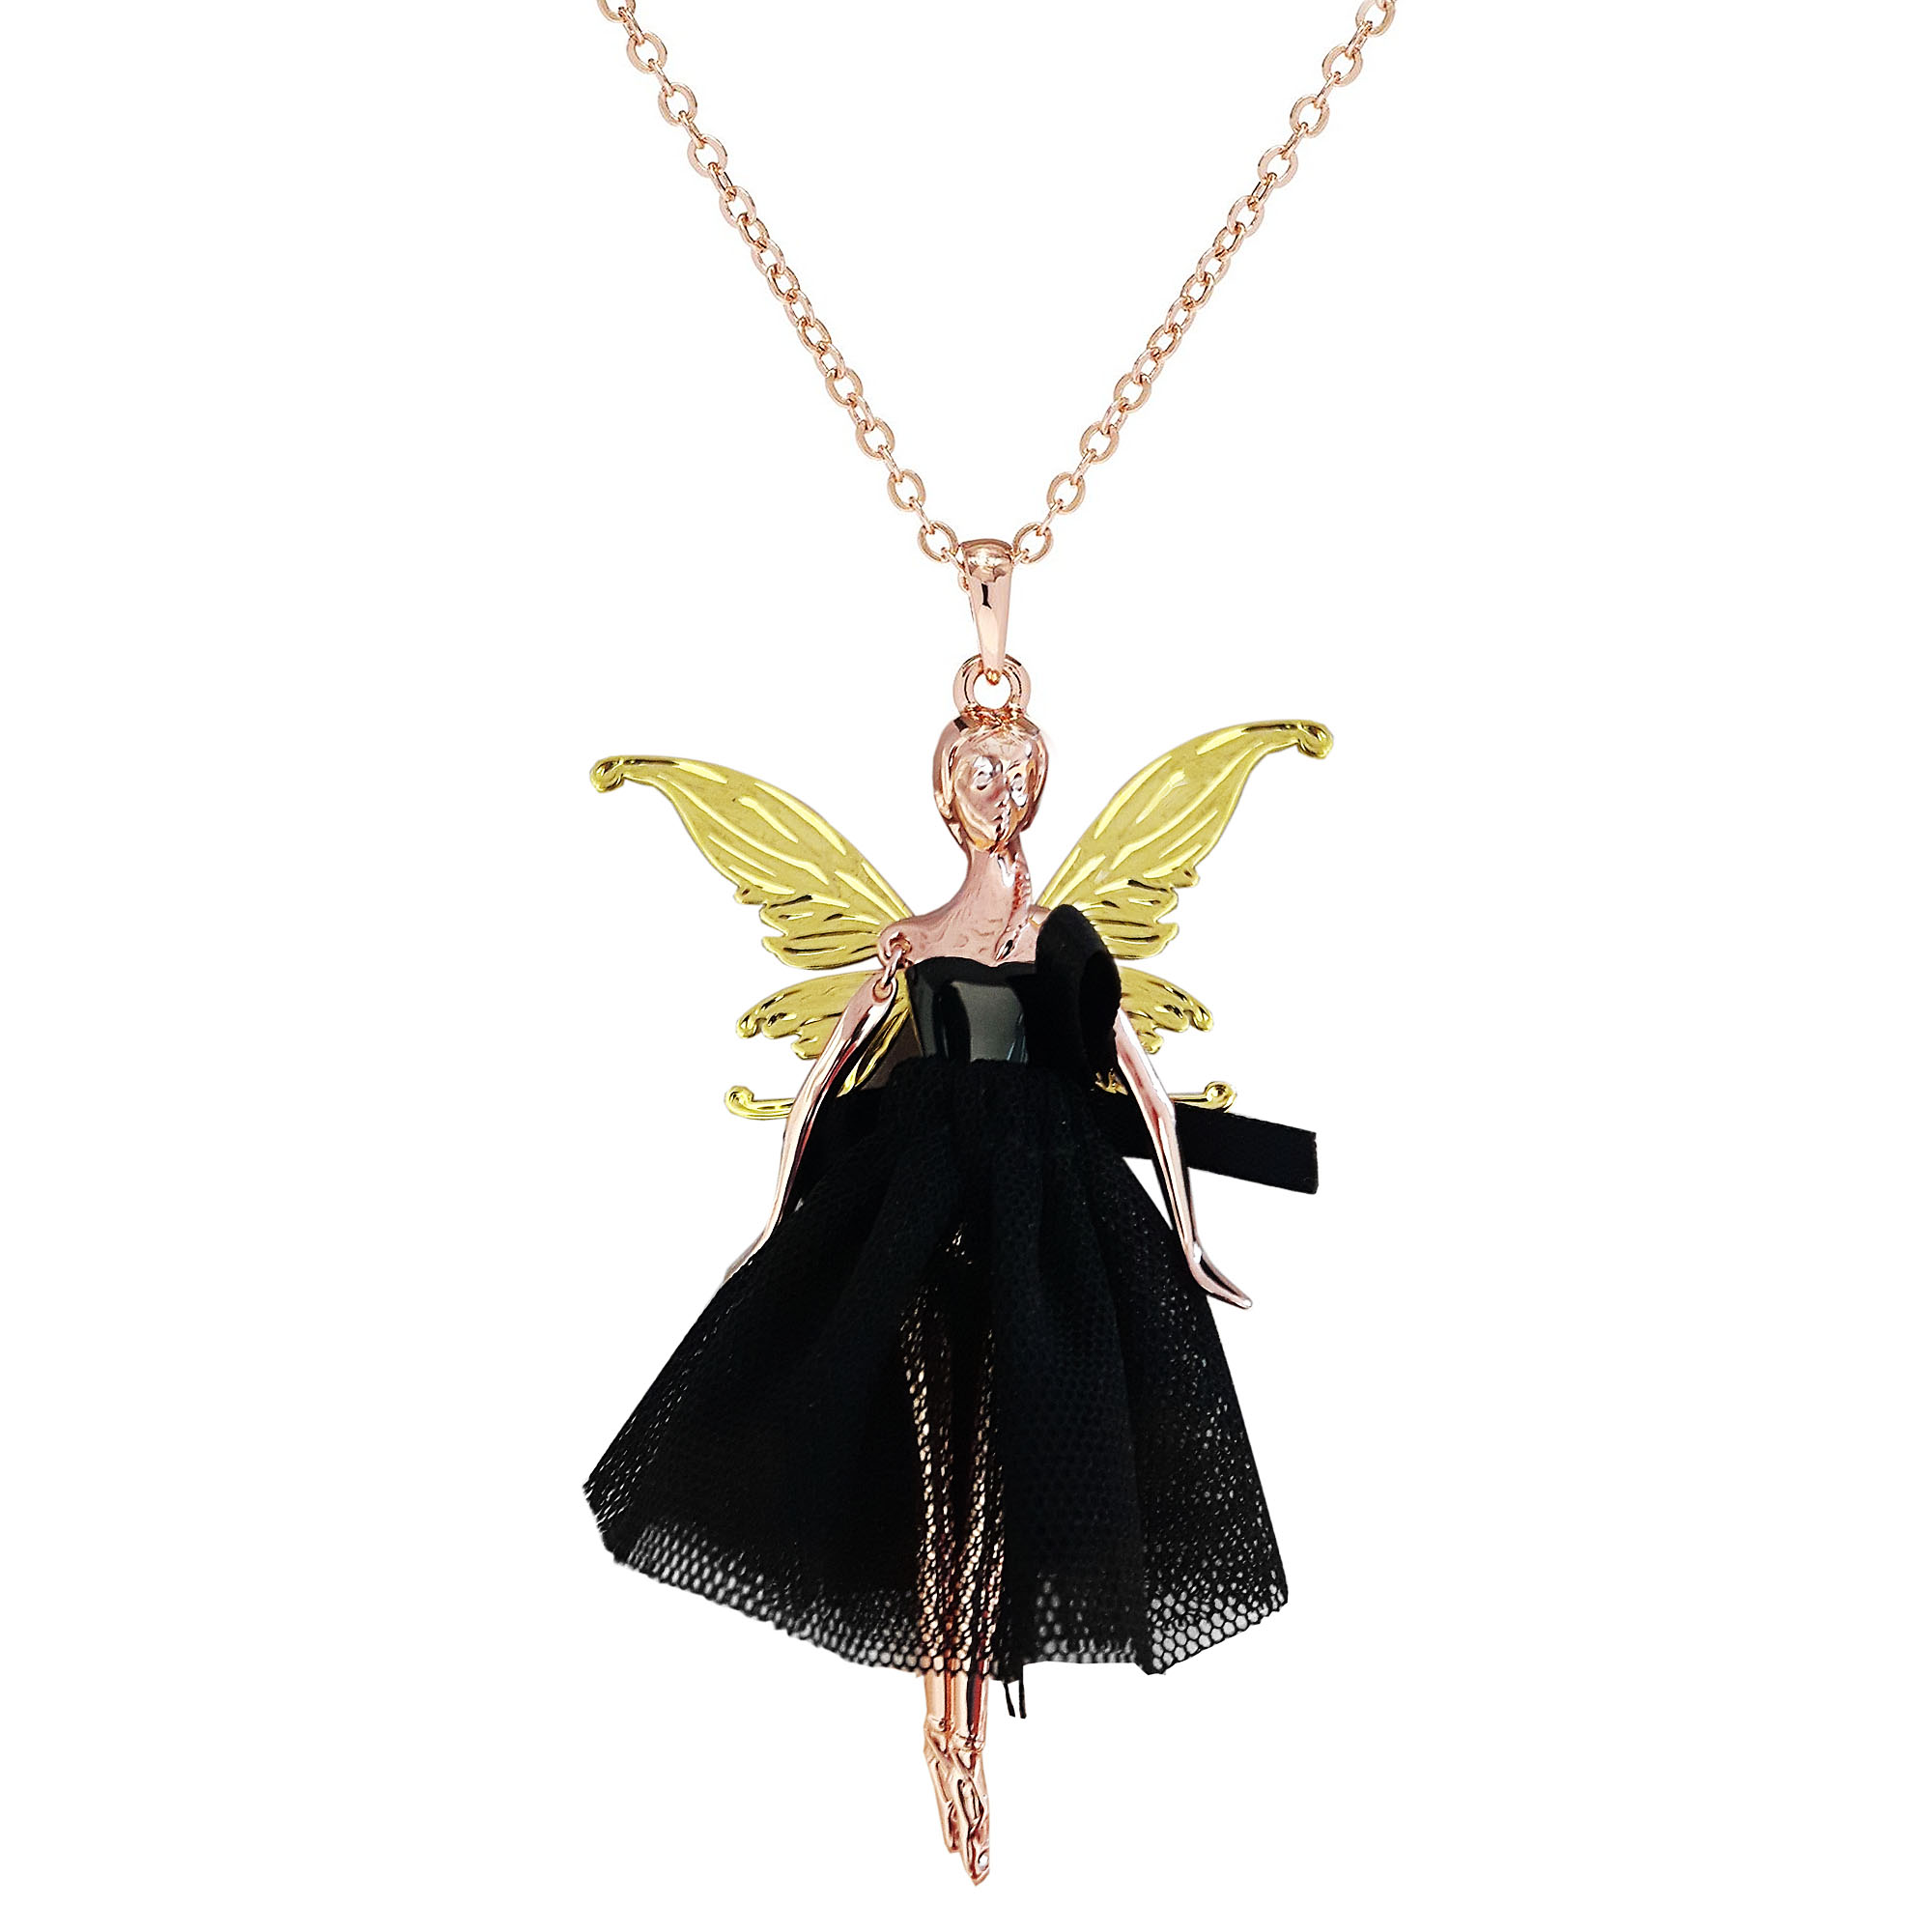 tinkerbell wings princess fairy pendant amazon angel jewelry necklace dp pink for girls women com crystal